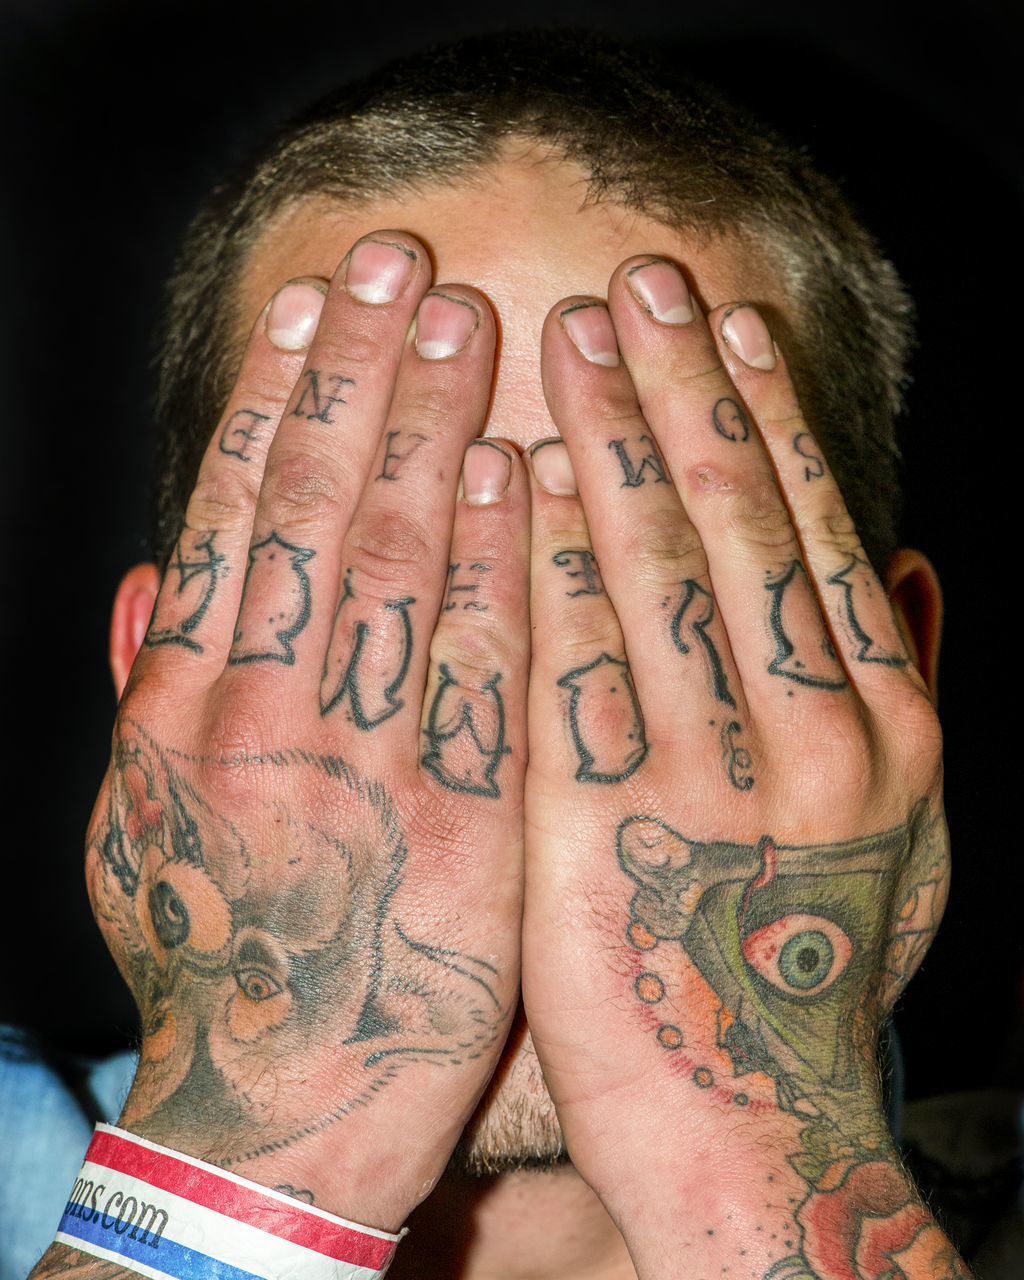 tattoo, human hand, black background, human body part, one person, close-up, studio shot, portrait, palm, indoors, young adult, adult, adults only, people, day